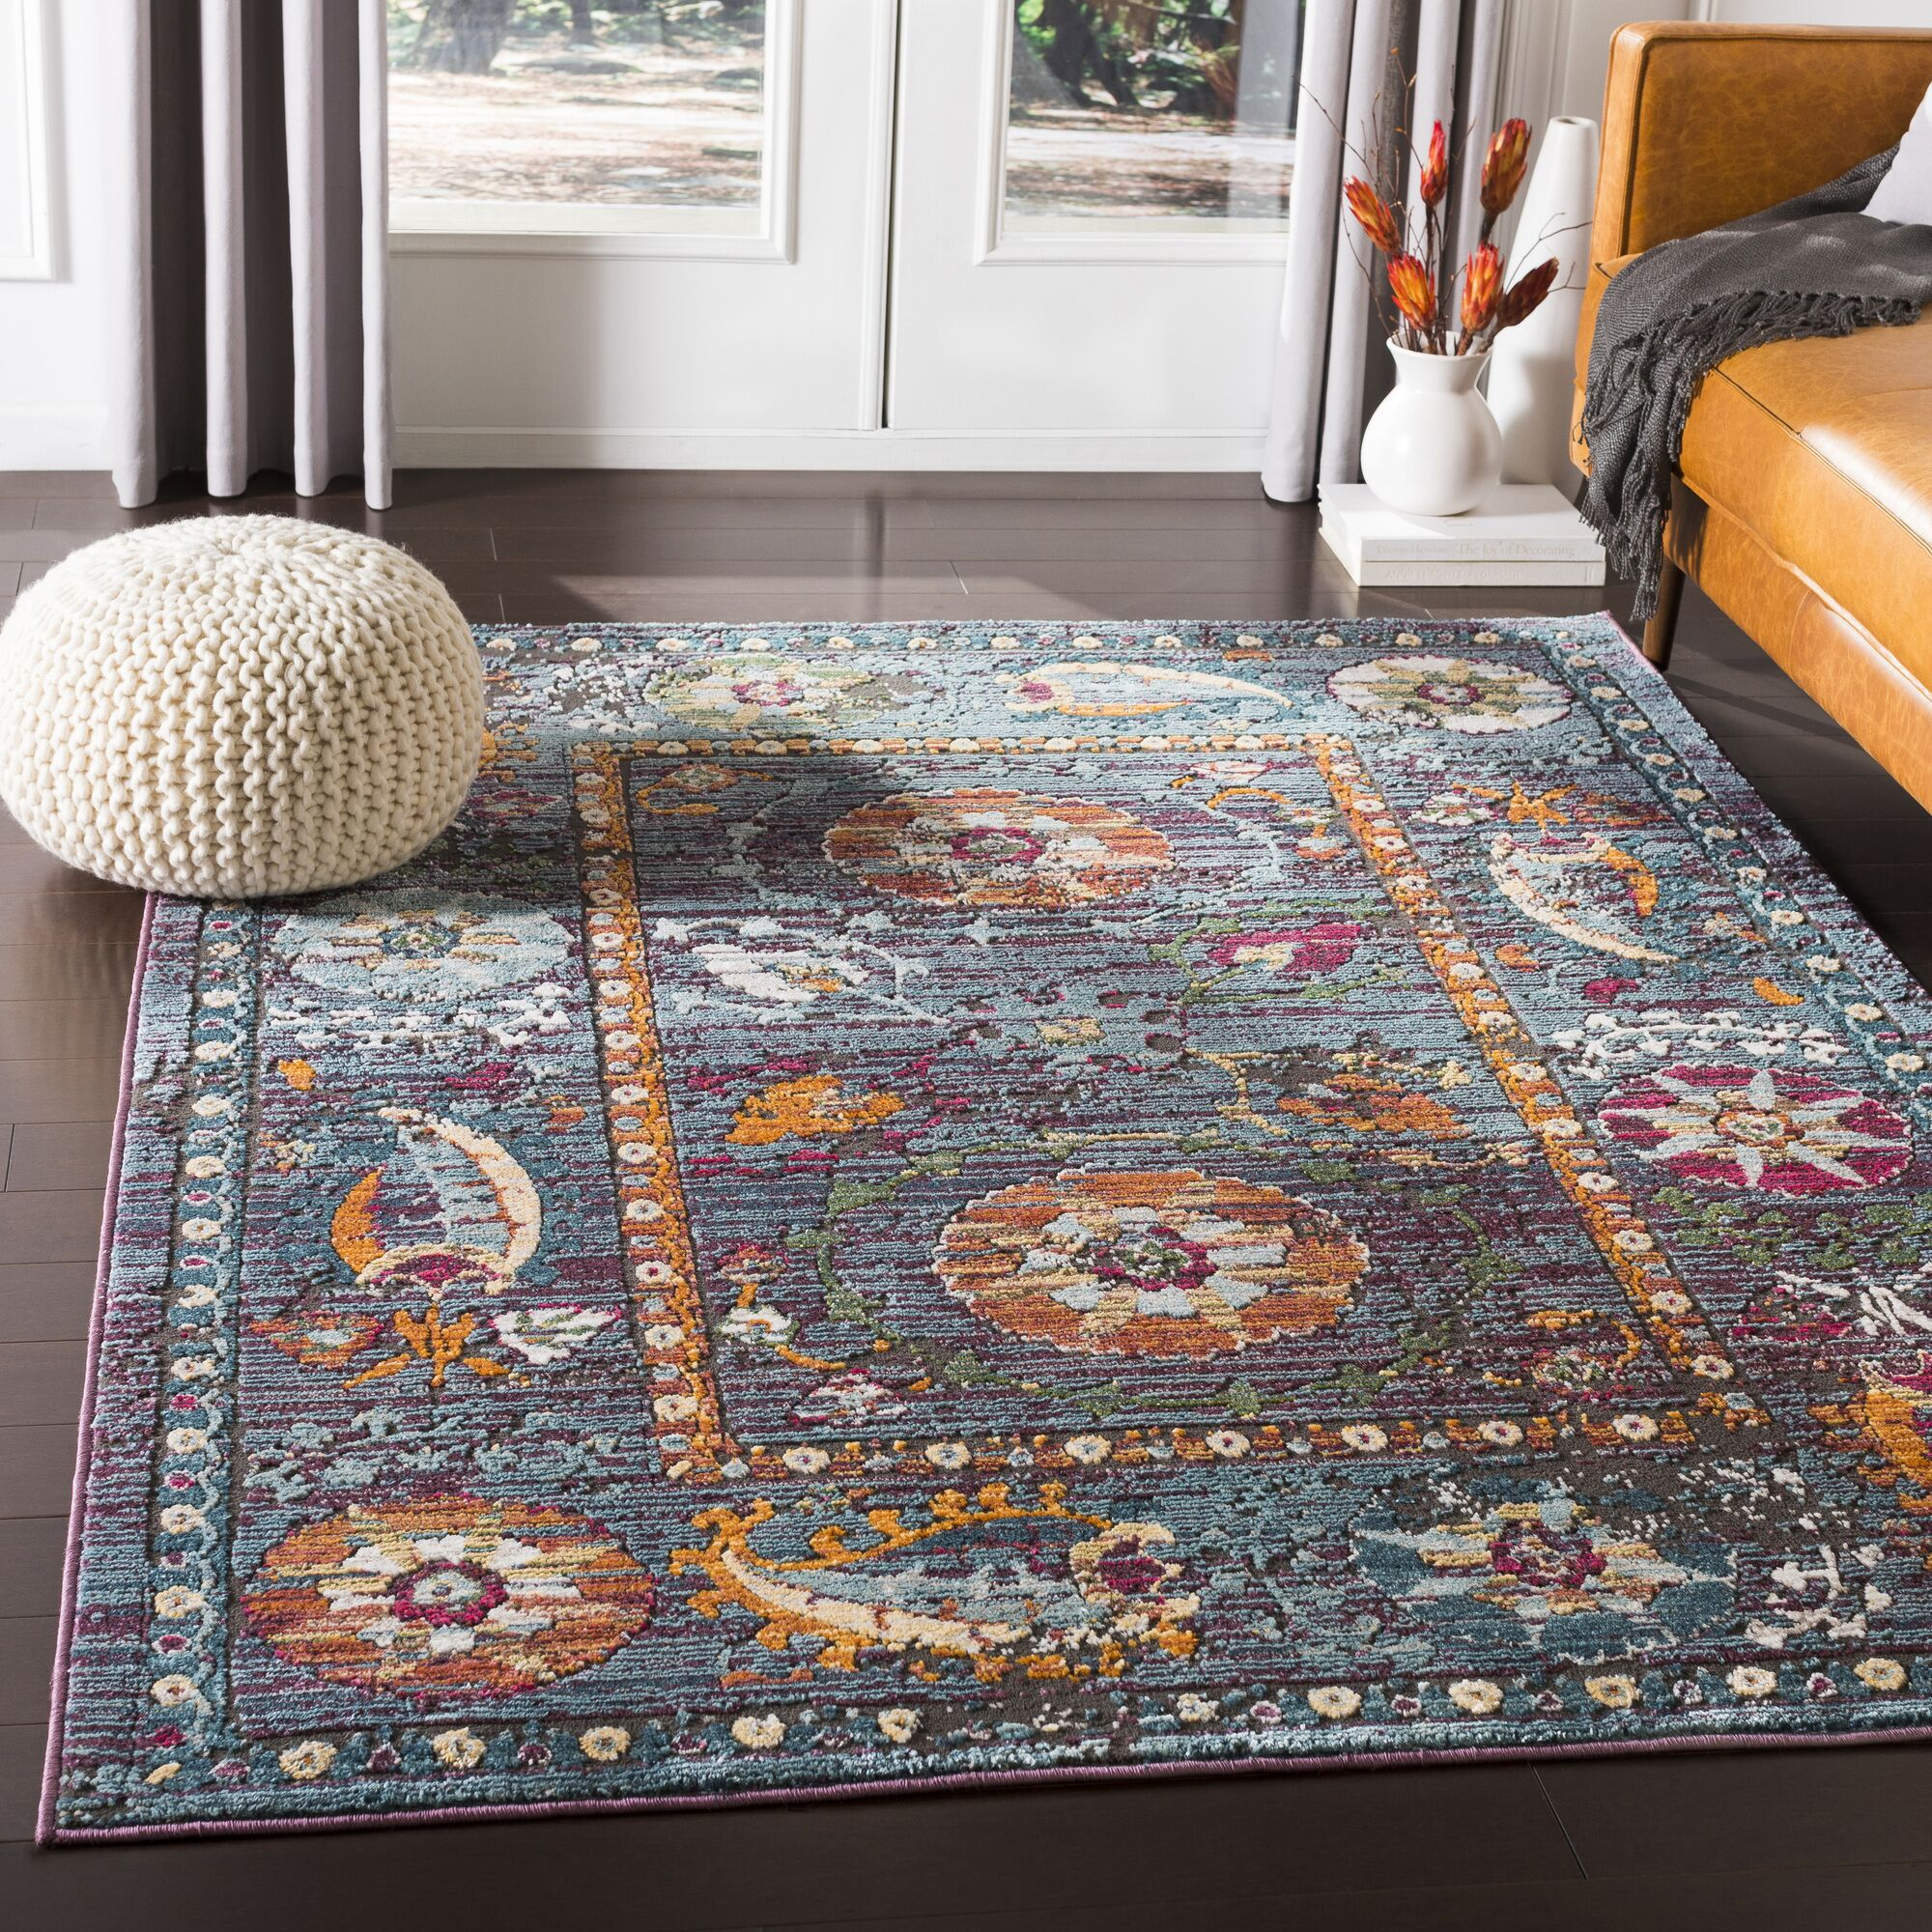 Kaiden Distressed Floral Teal/Purple Area Rug Rug Size: Rectangle 7'10